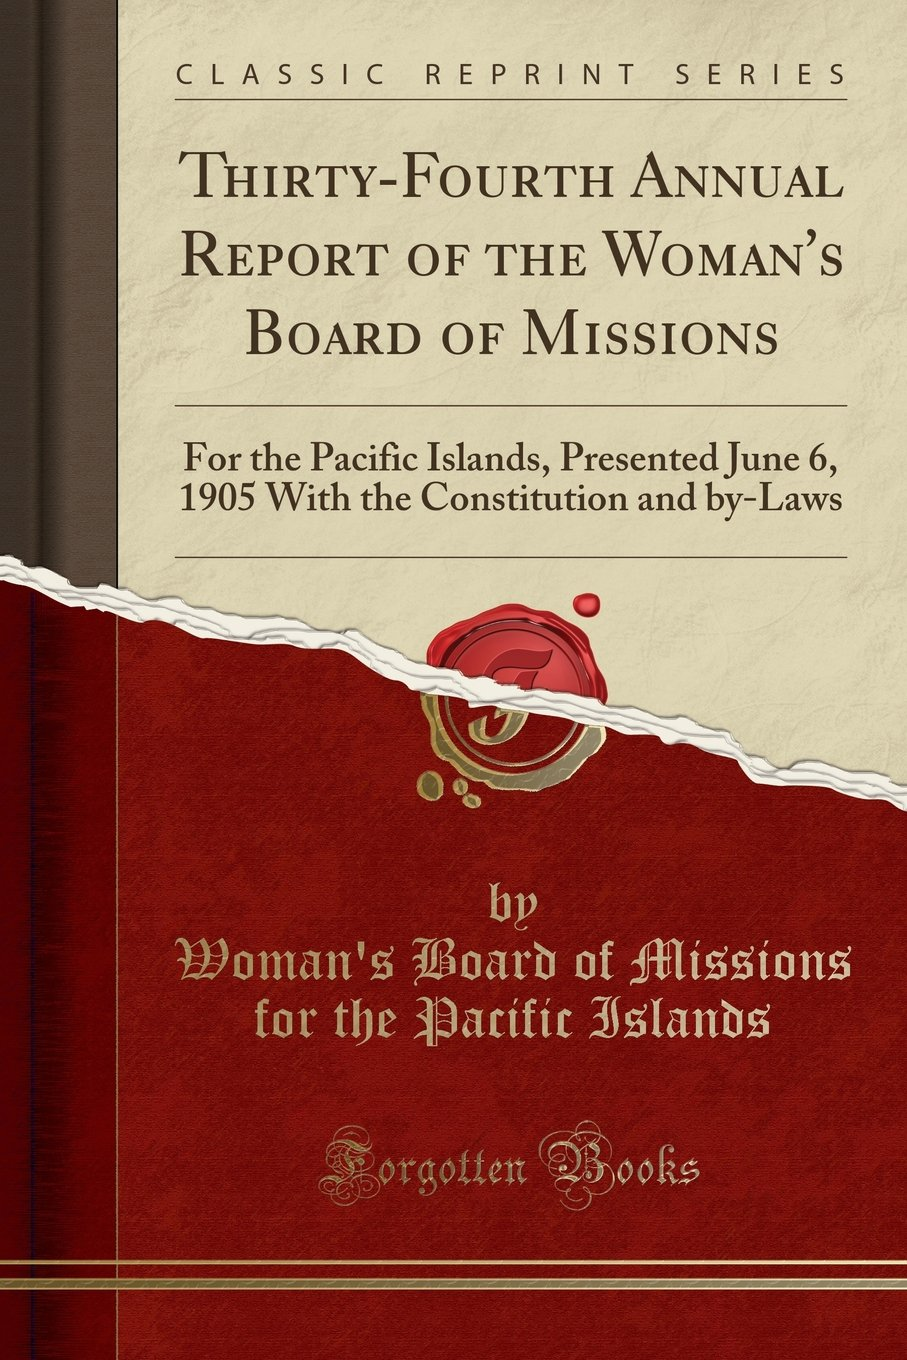 Thirty-Fourth Annual Report of the Woman's Board of Missions: For the Pacific Islands, Presented June 6, 1905 With the Constitution and by-Laws (Classic Reprint) pdf